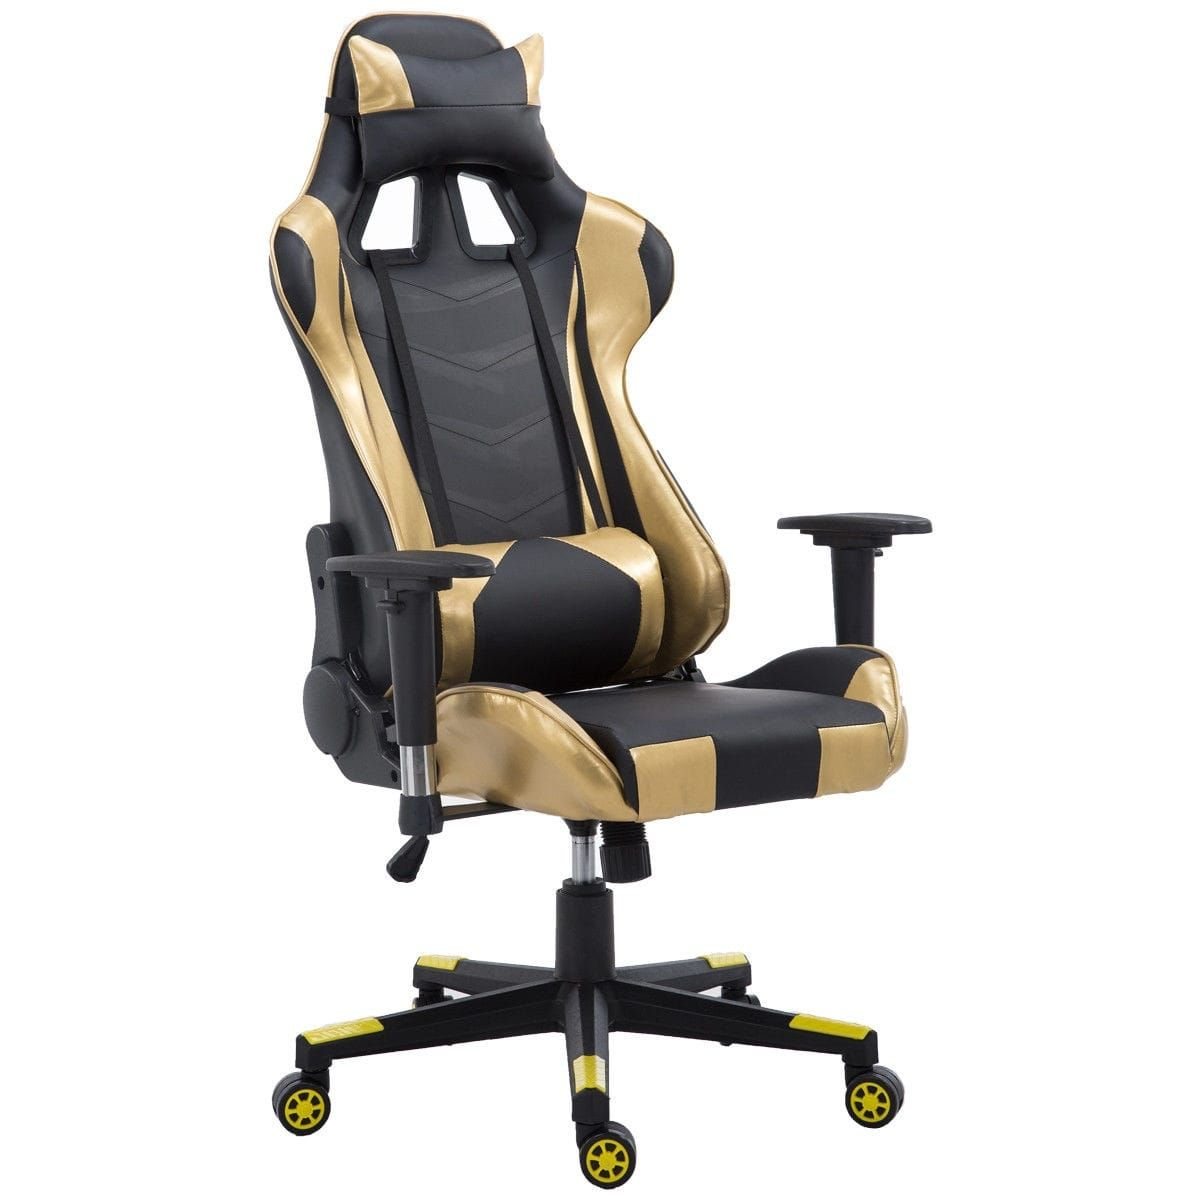 Stupendous Costway Executive Gaming Chair Racing Office Chair High Back Evergreenethics Interior Chair Design Evergreenethicsorg